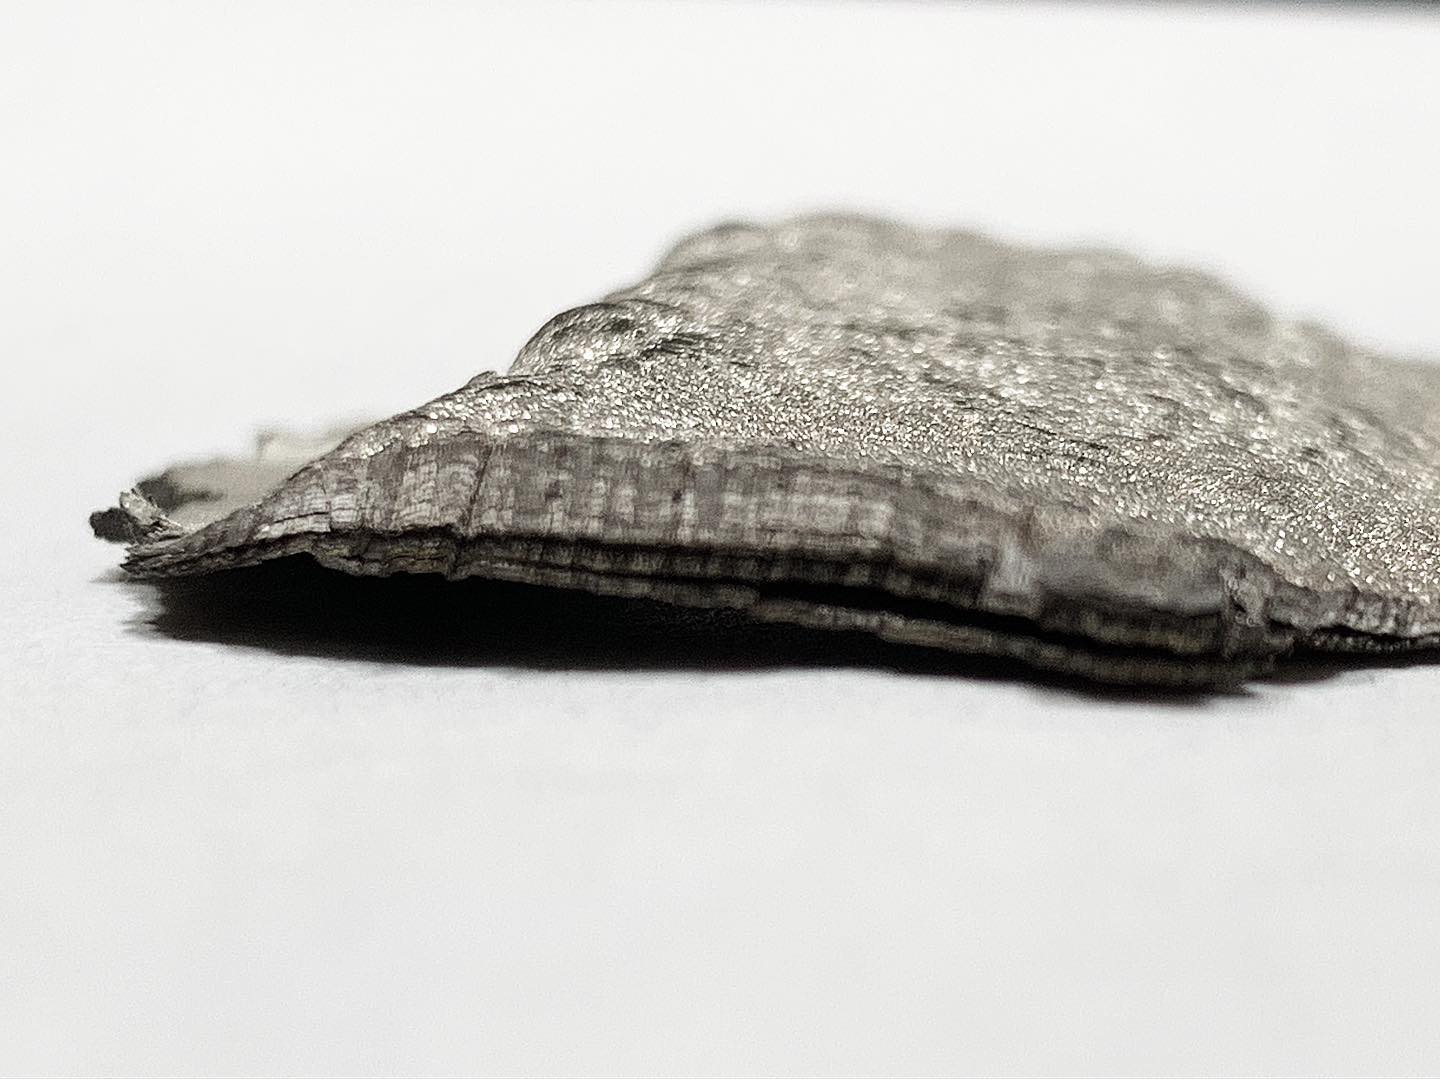 """""""The structure & composition of these materials are not from any known existing military or commercial application,"""" saysCOO Steve Justice """"we are  focusing onverifiablefacts and working to develop independent scientific proof of the materials' properties & attributes."""" https://t.co/GUbPBSPl7M"""